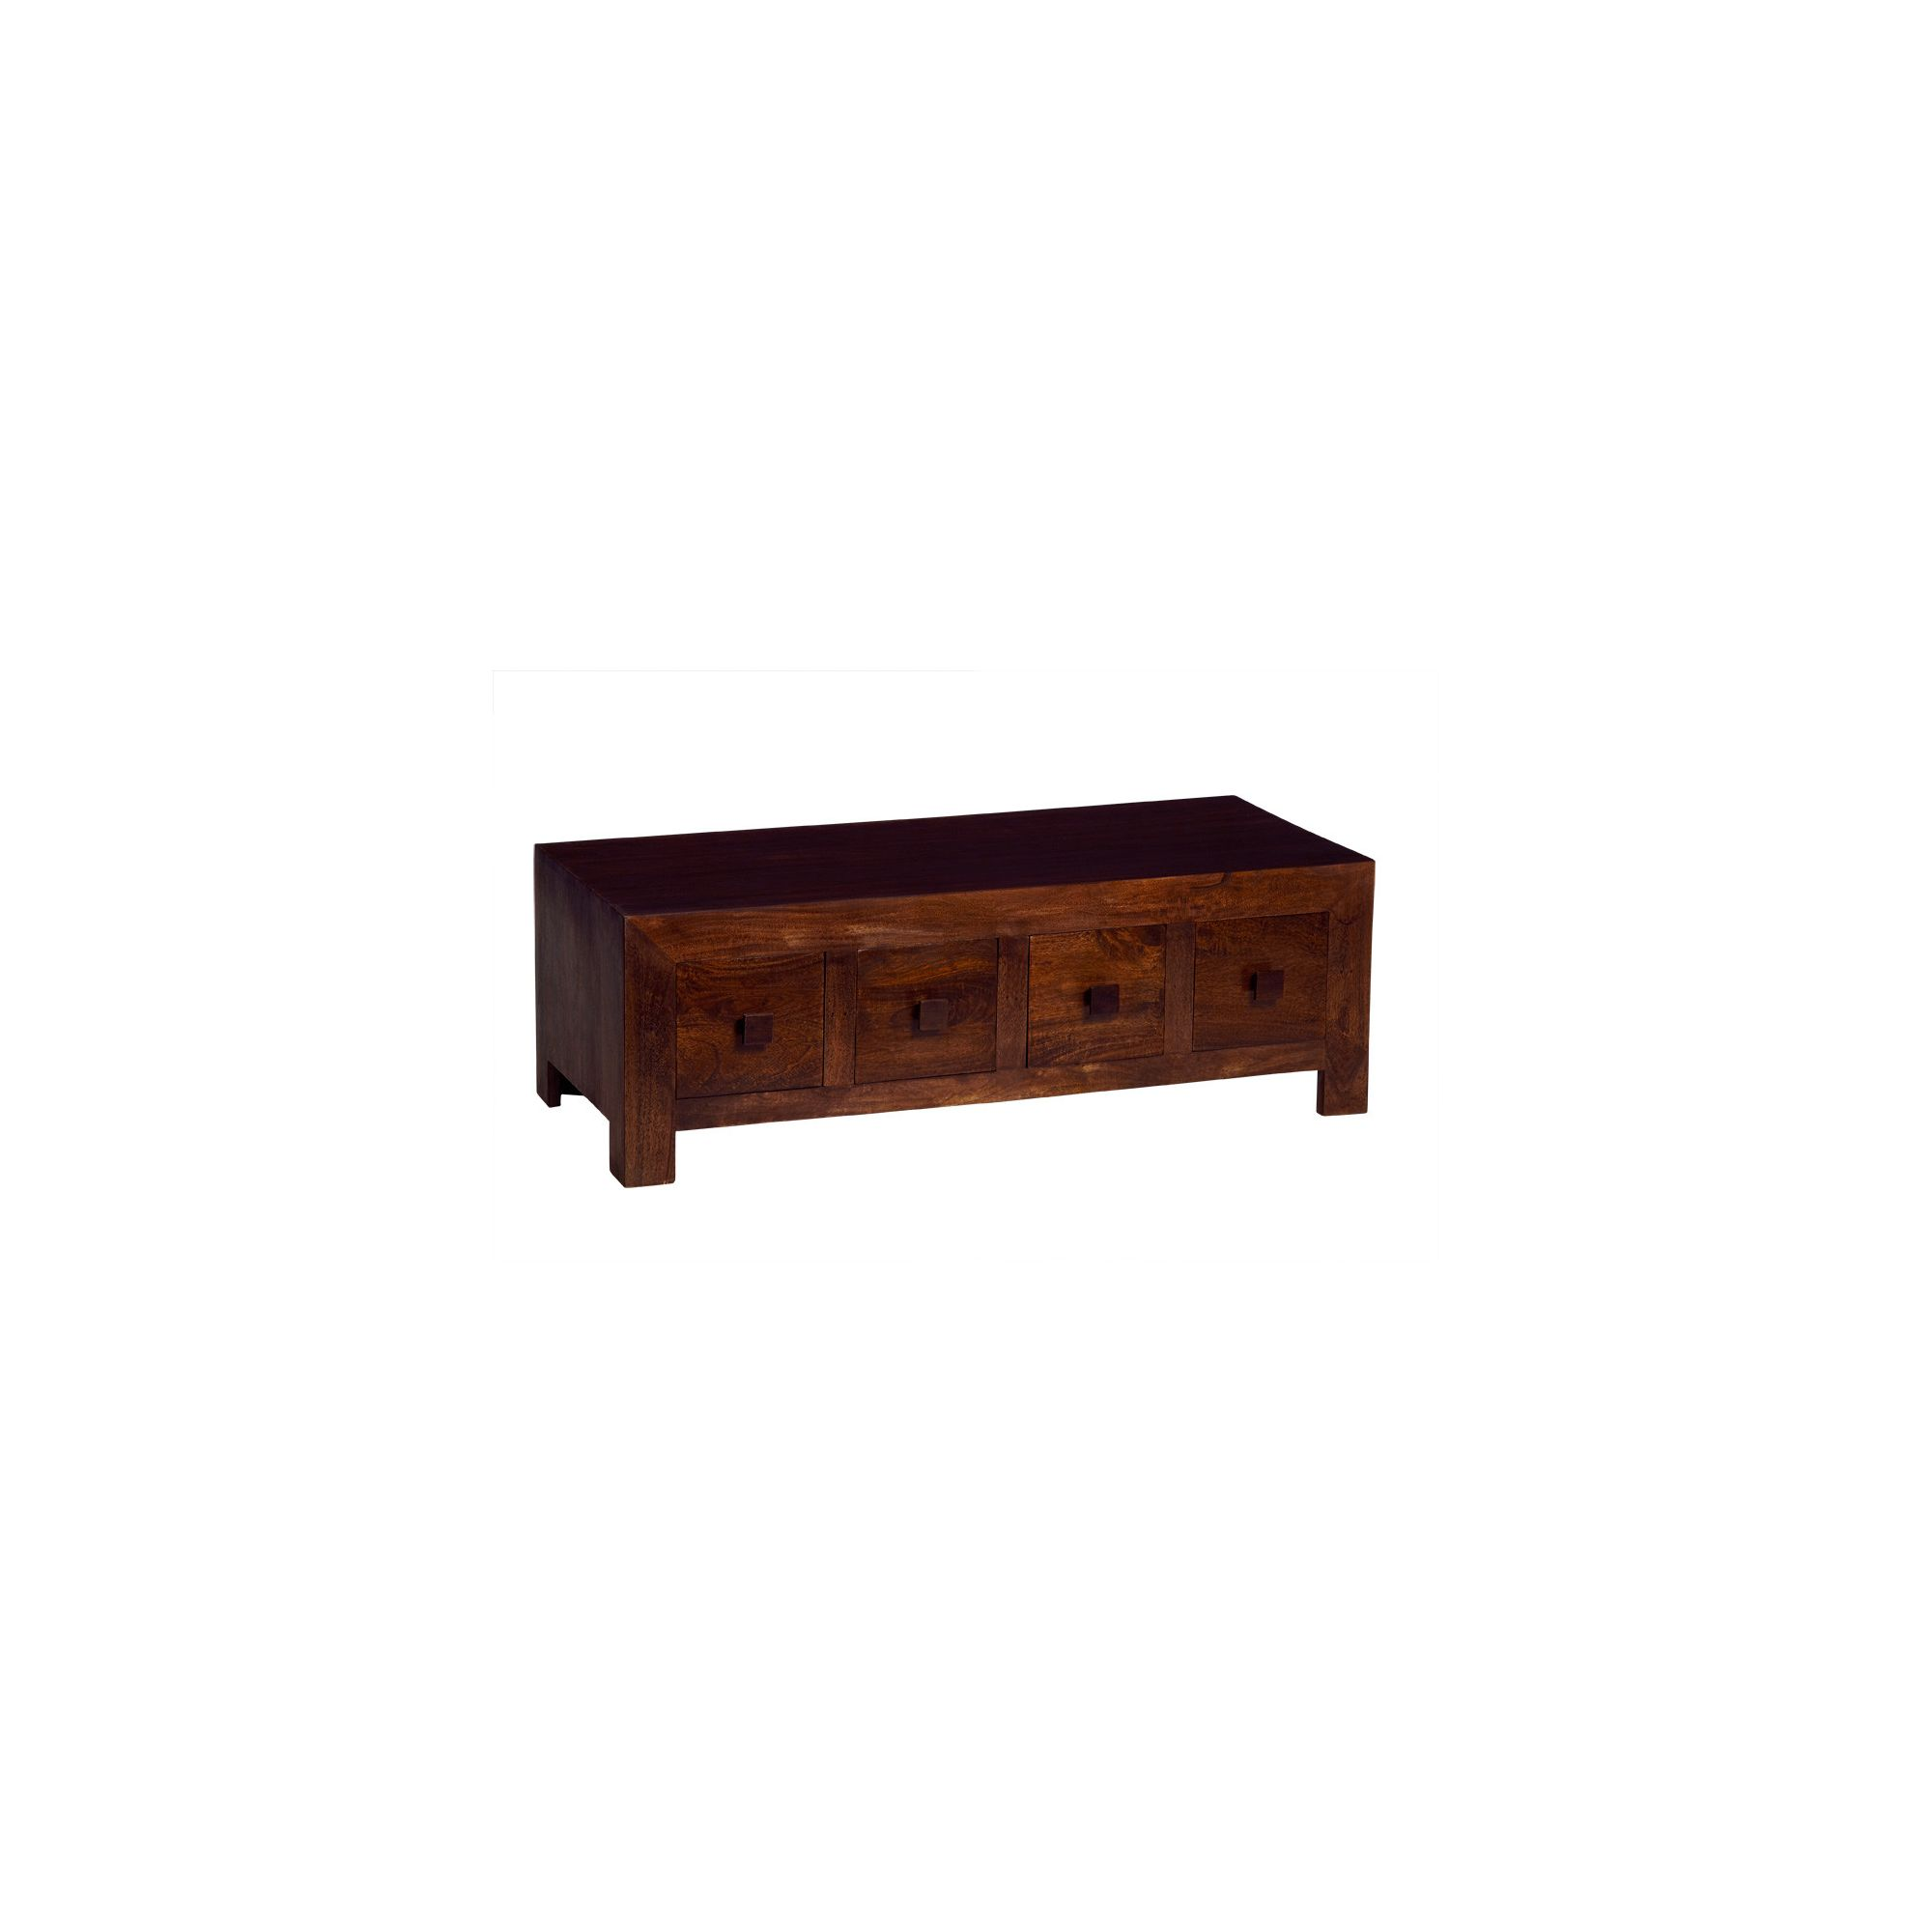 Indian Hub Mango Toko Eight Drawer Coffee Table at Tesco Direct